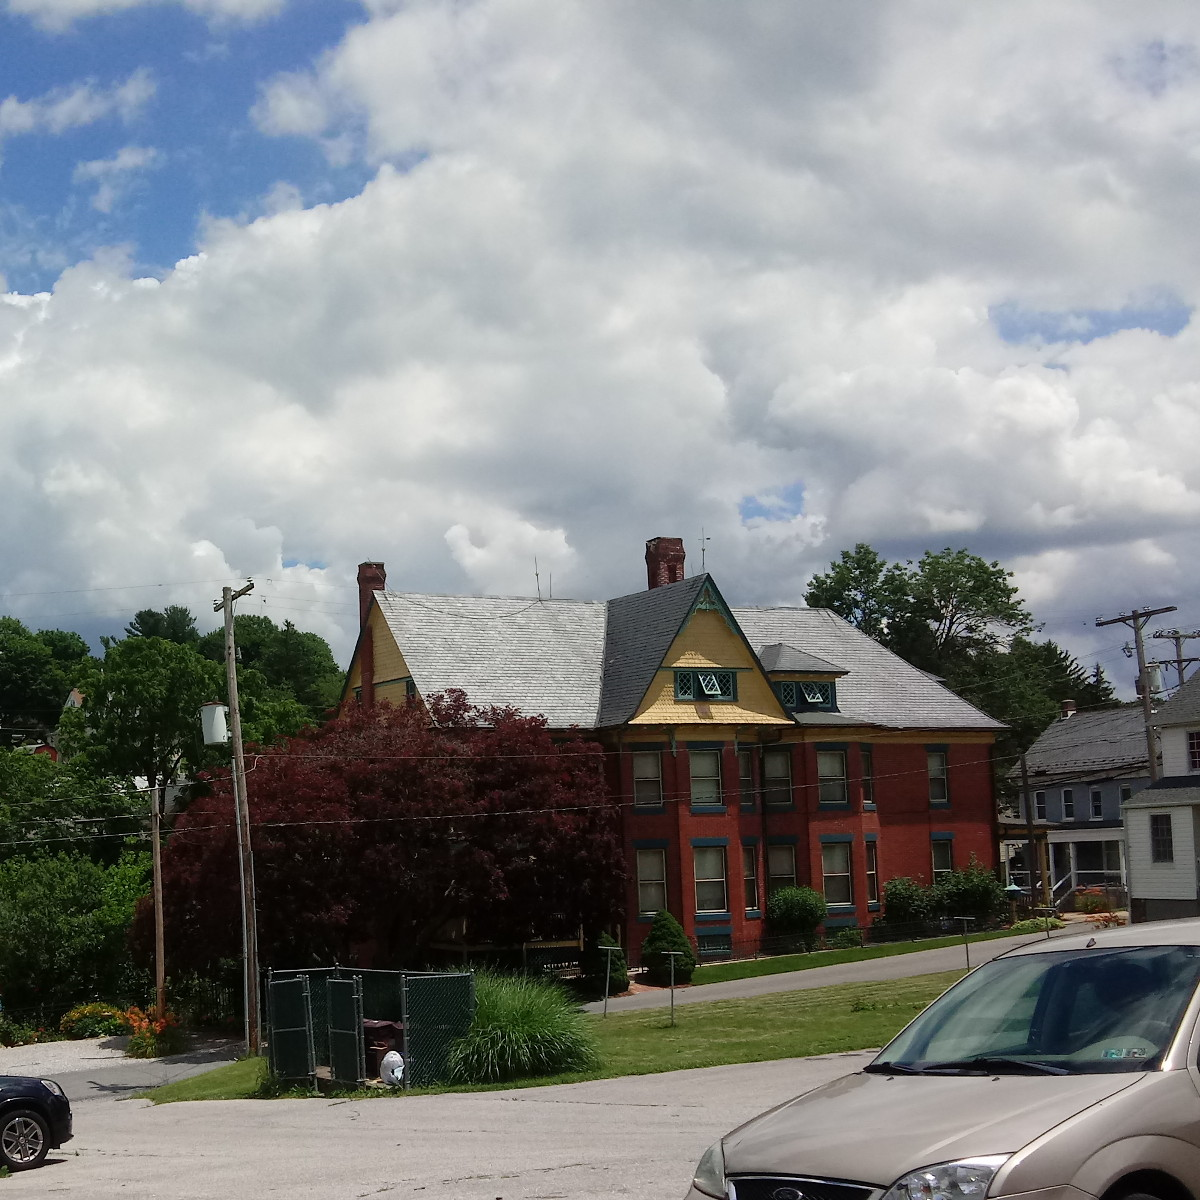 Clouds over the Taylor House in Yoe